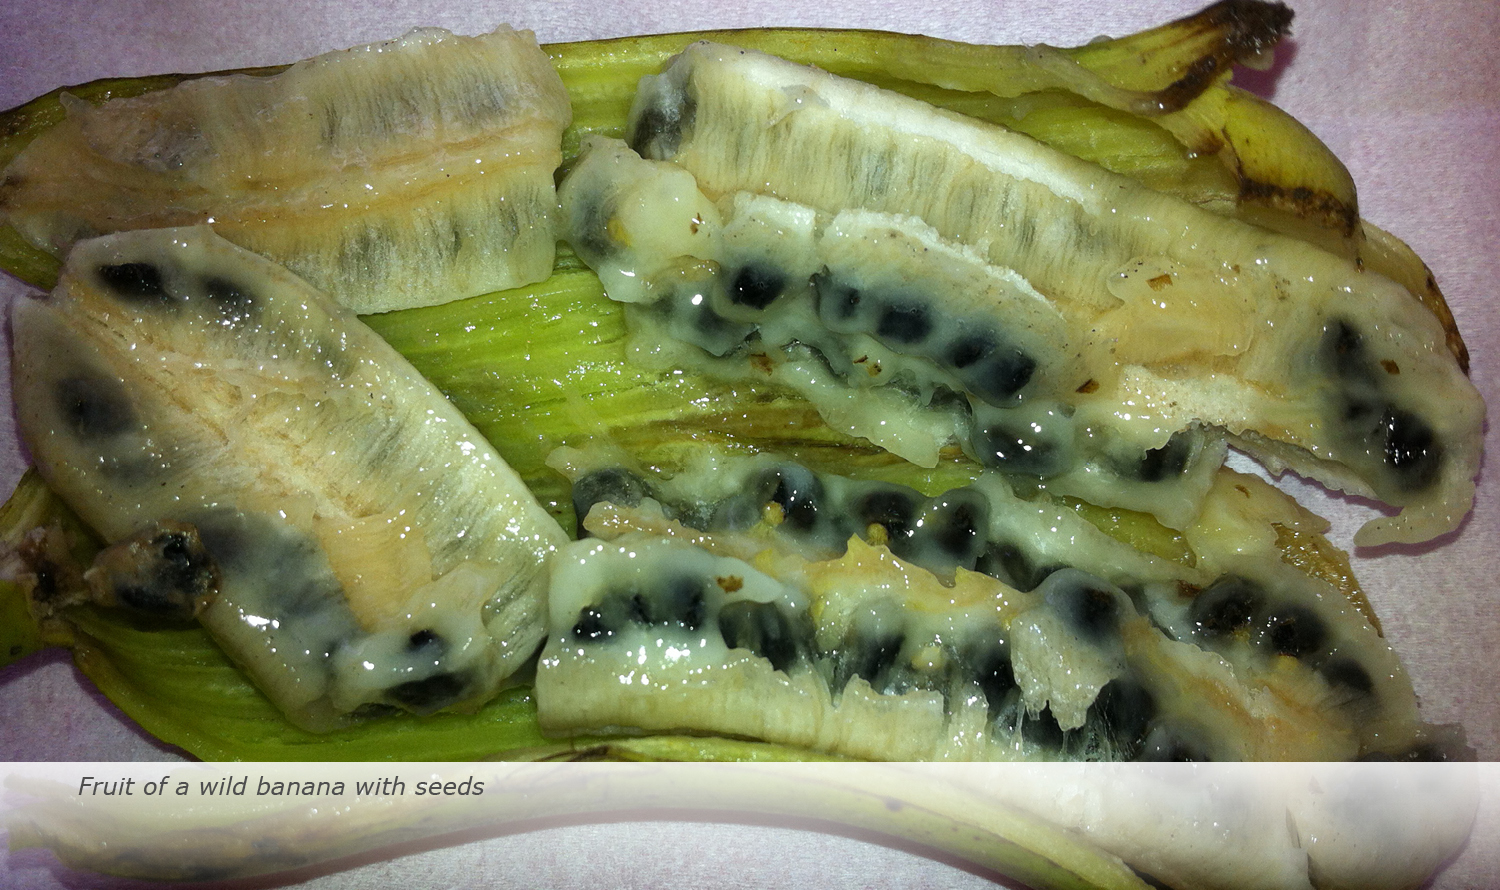 Info & Facts: Fruit of a wild banana with seeds